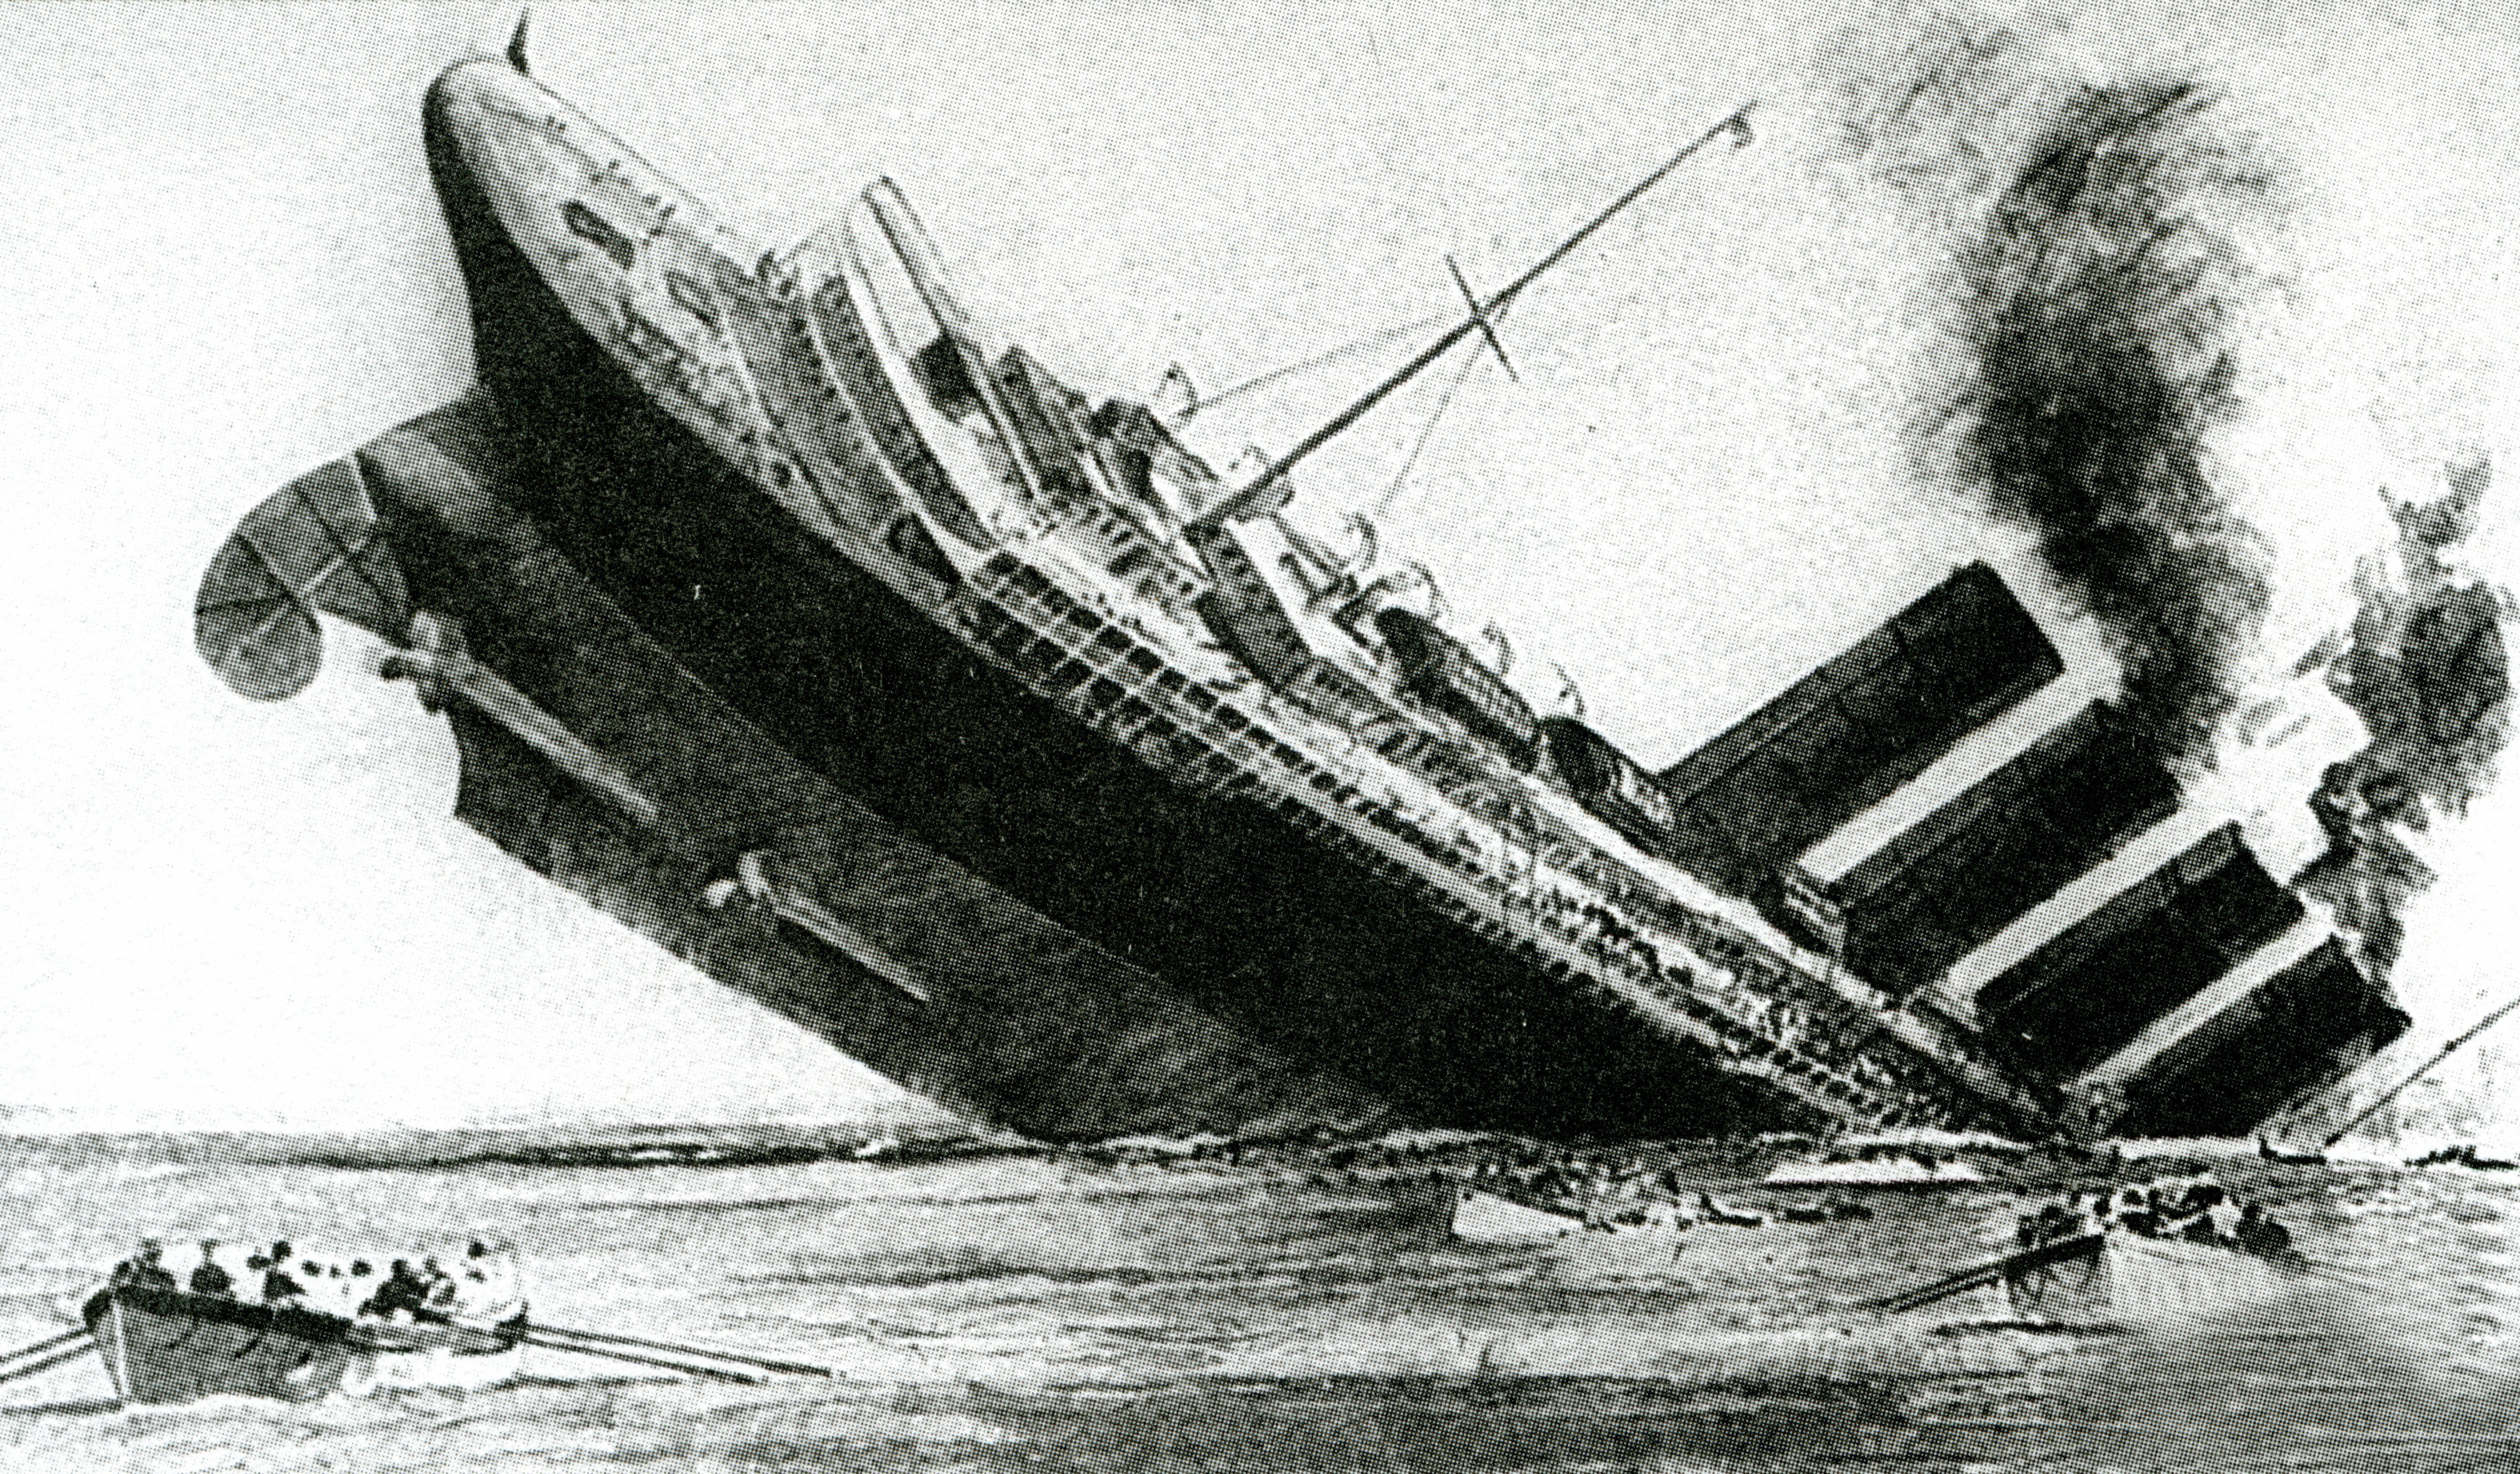 Sinking of the ocean liner